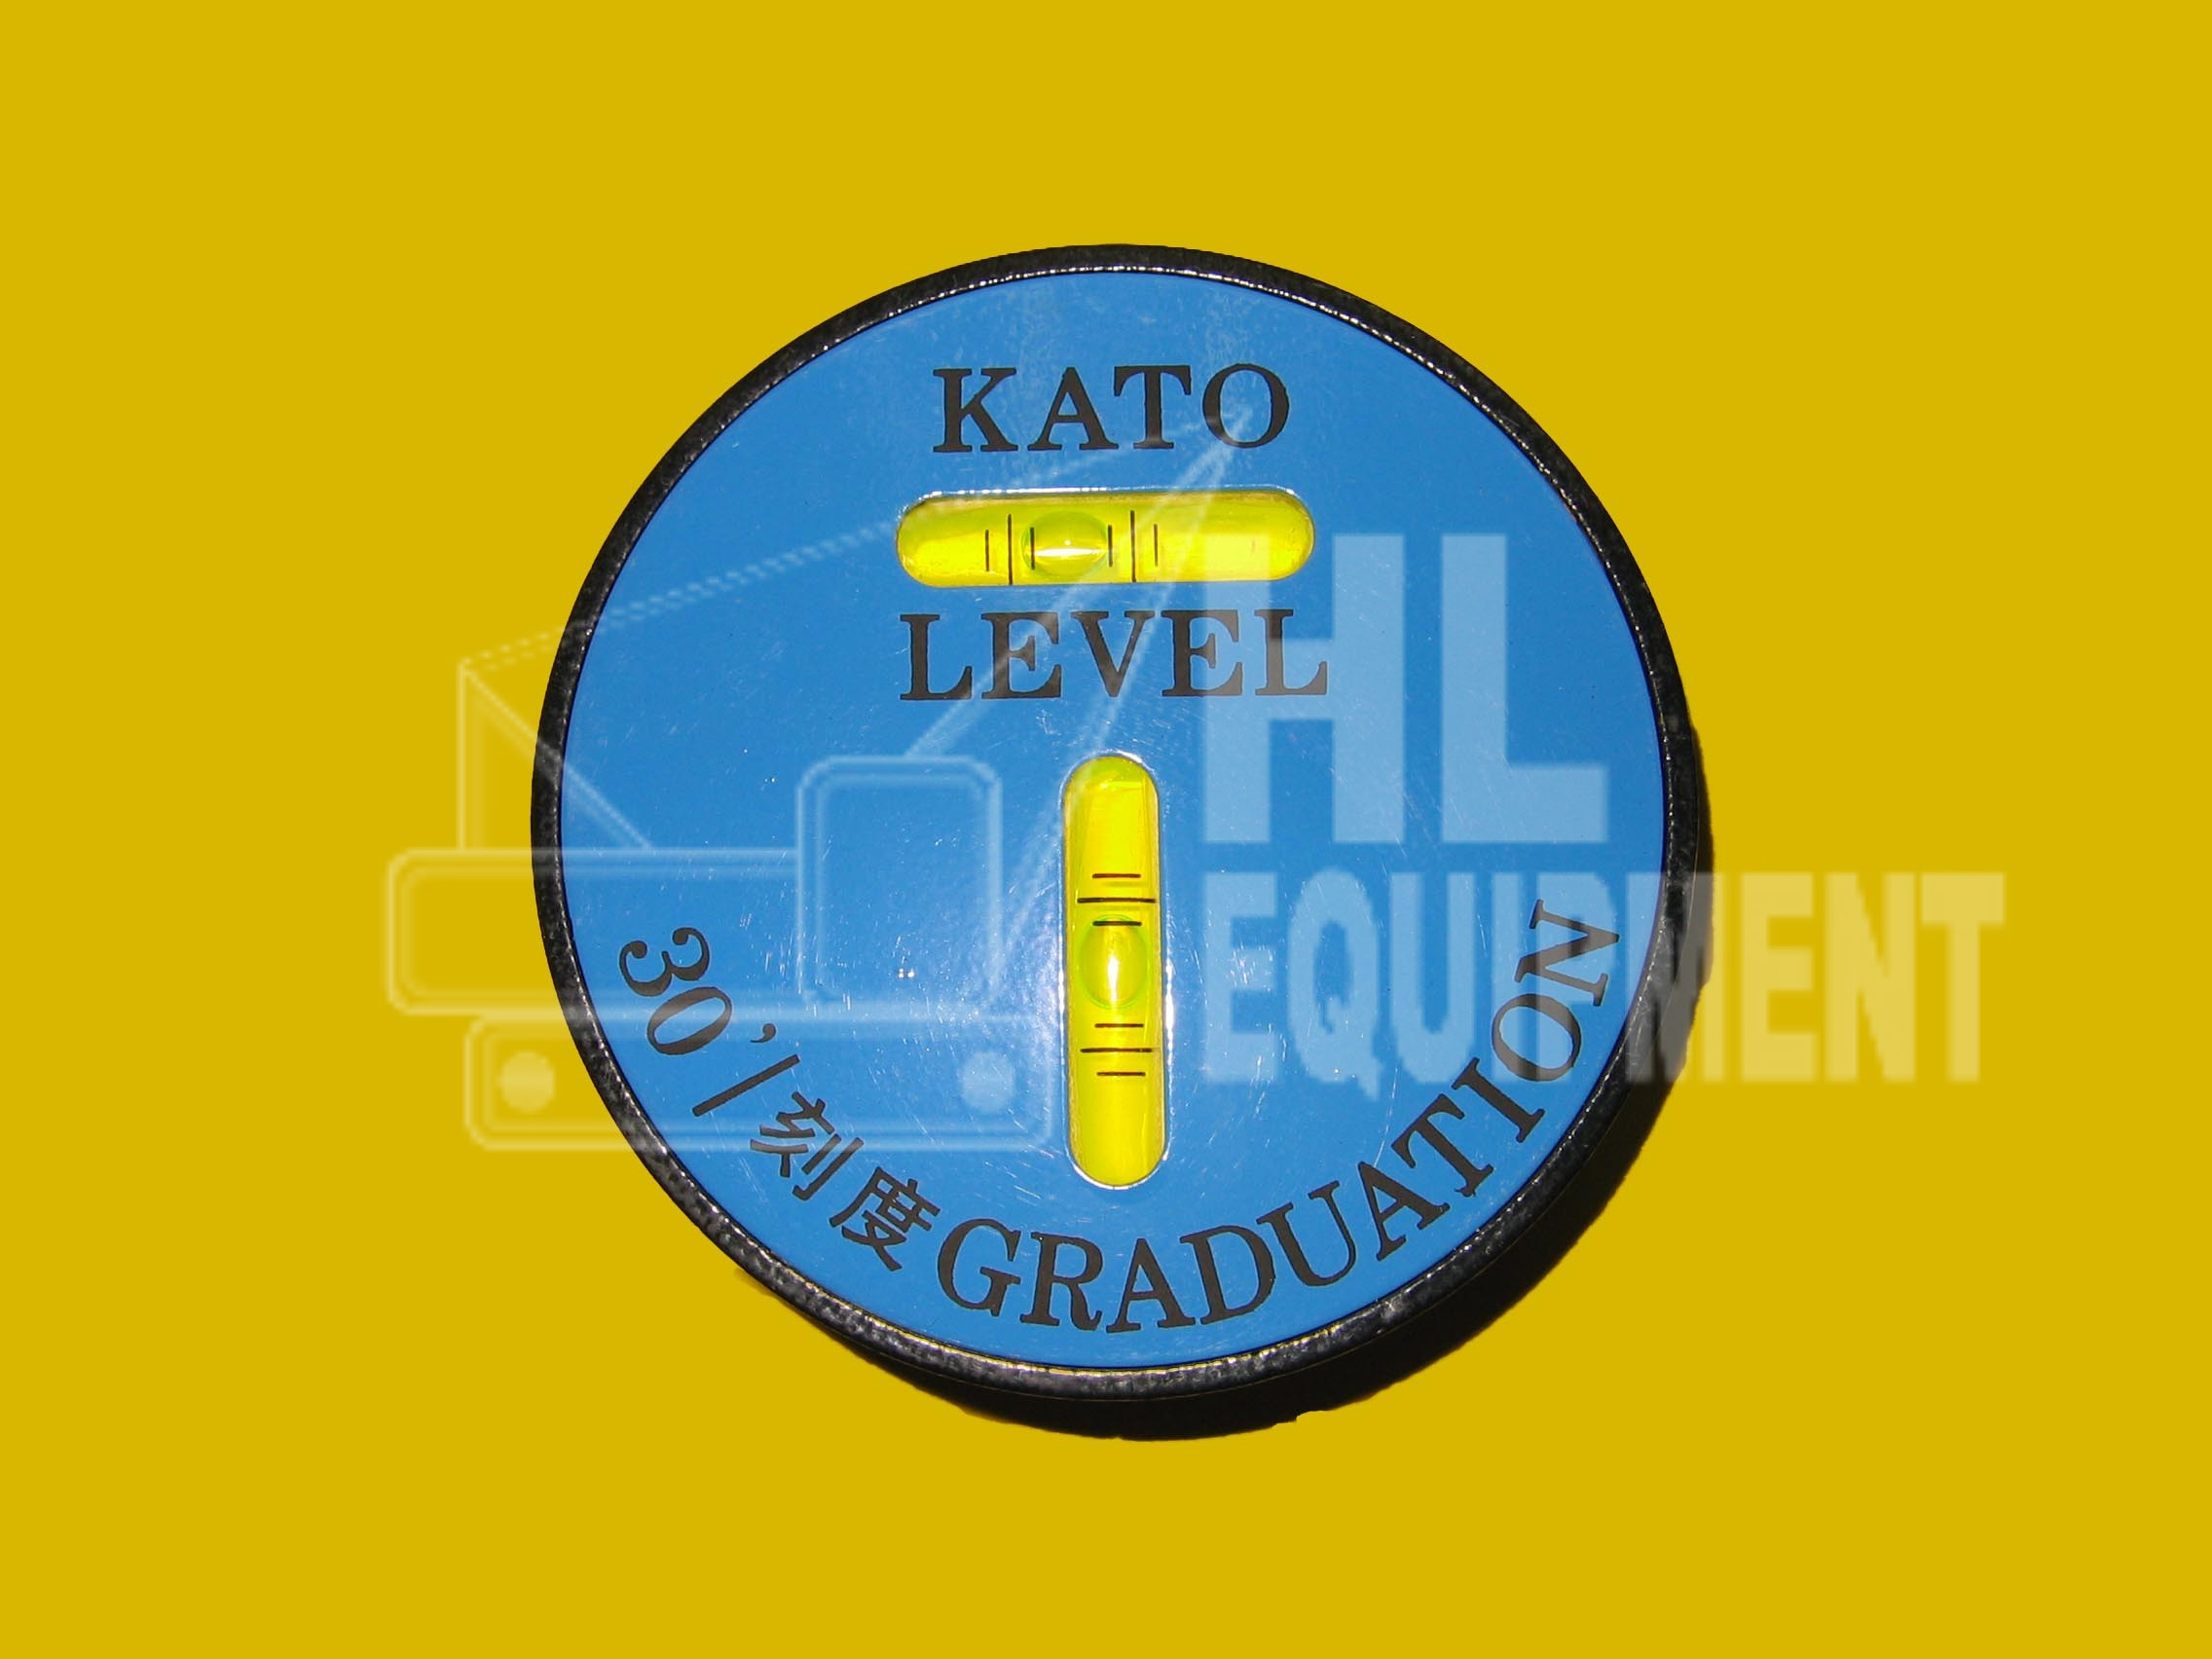 Kato Level Gauge